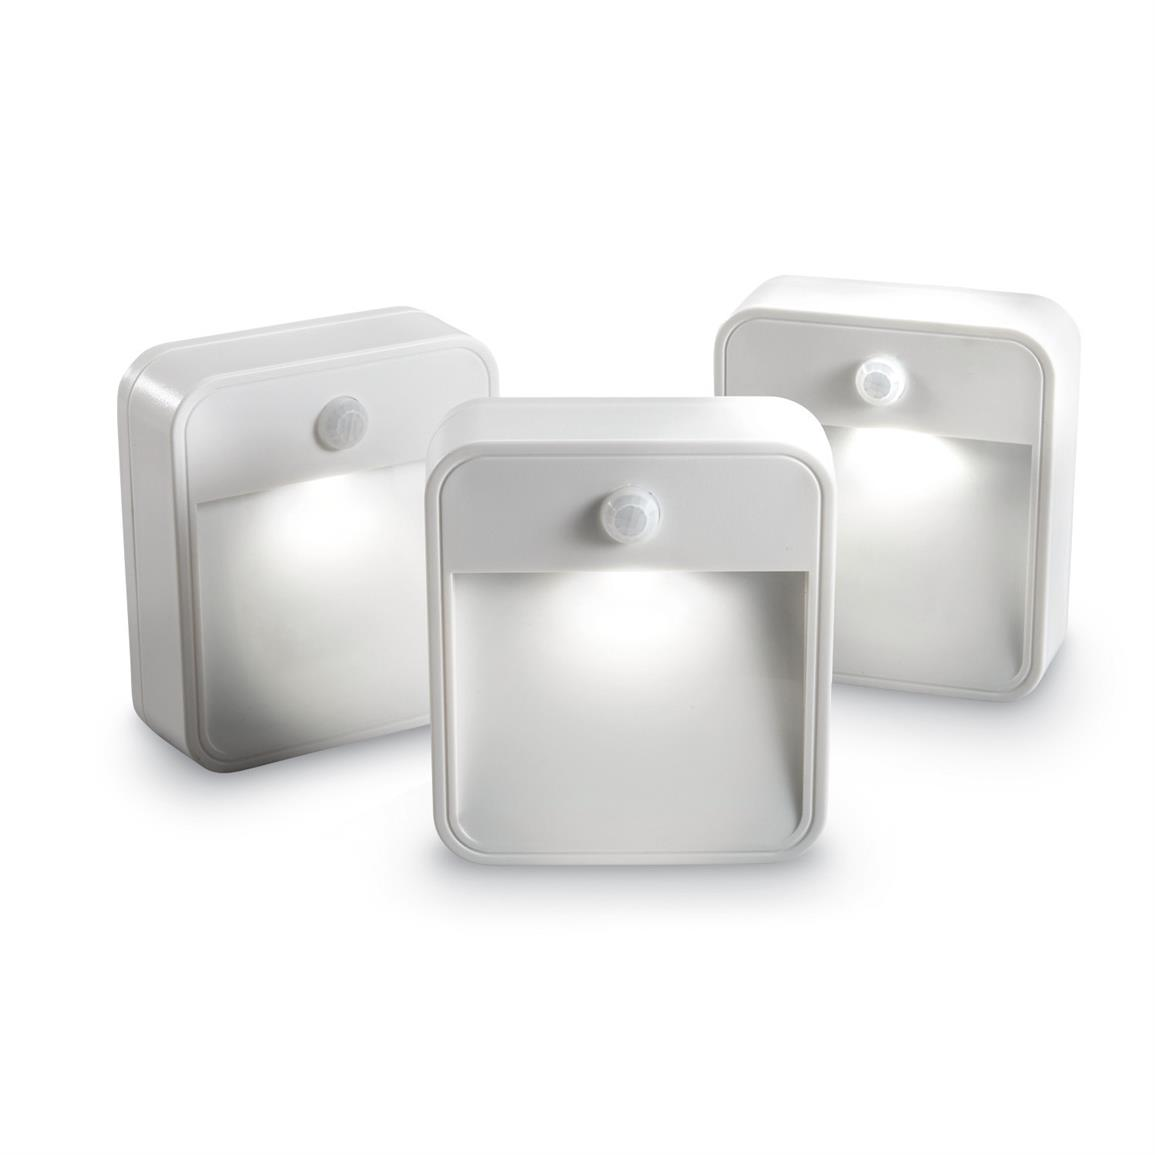 Mr Beams Stick Anywhere Wireless Motion Sensor LED Night Lights, 3 Pack